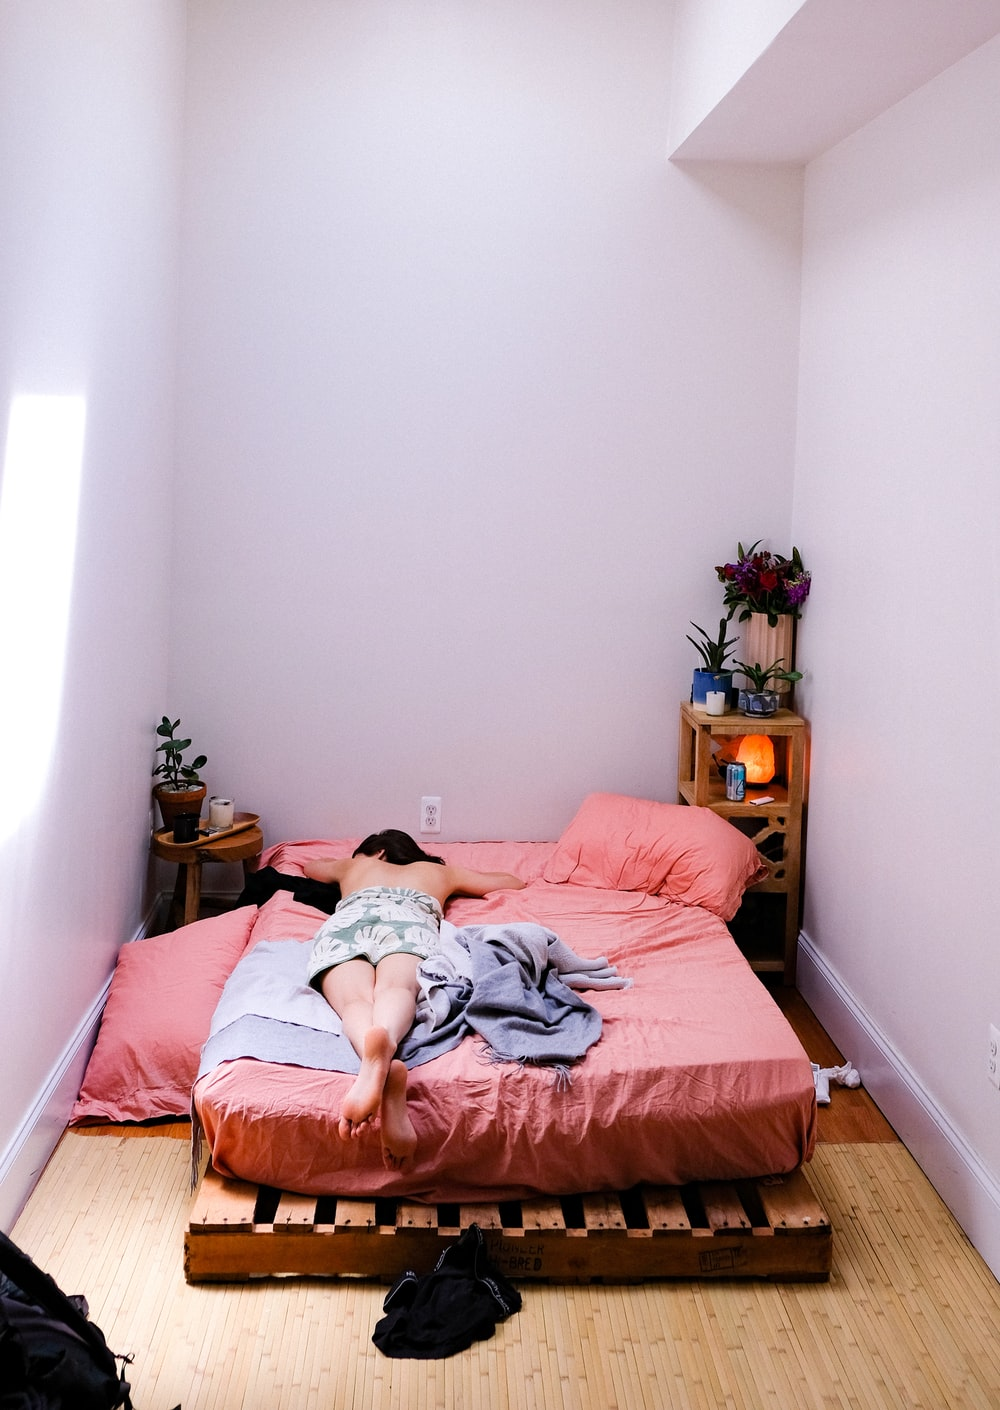 person lying on pink mattress